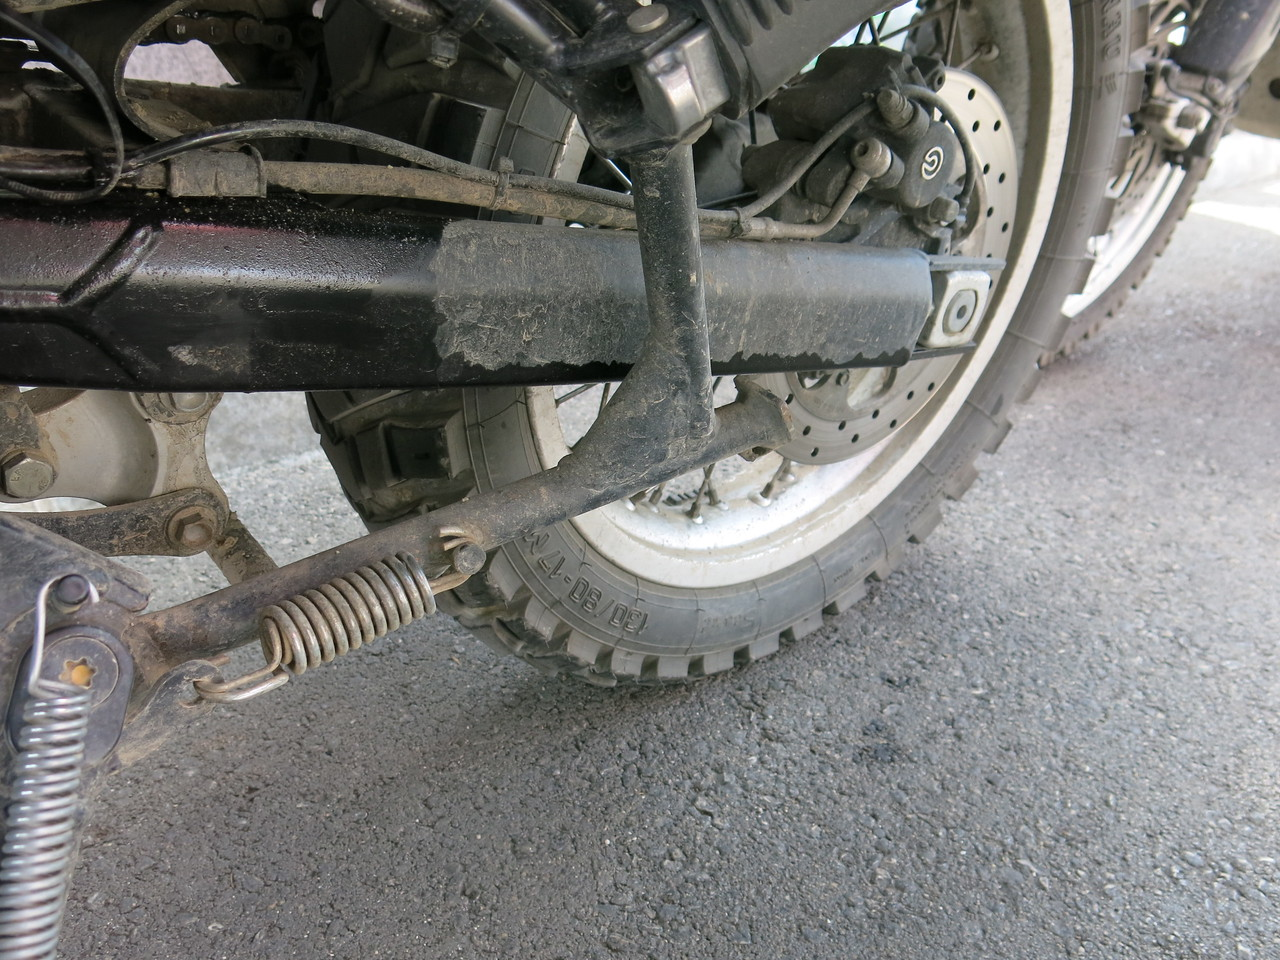 Swingarm covered in oil from a leaky rear shock